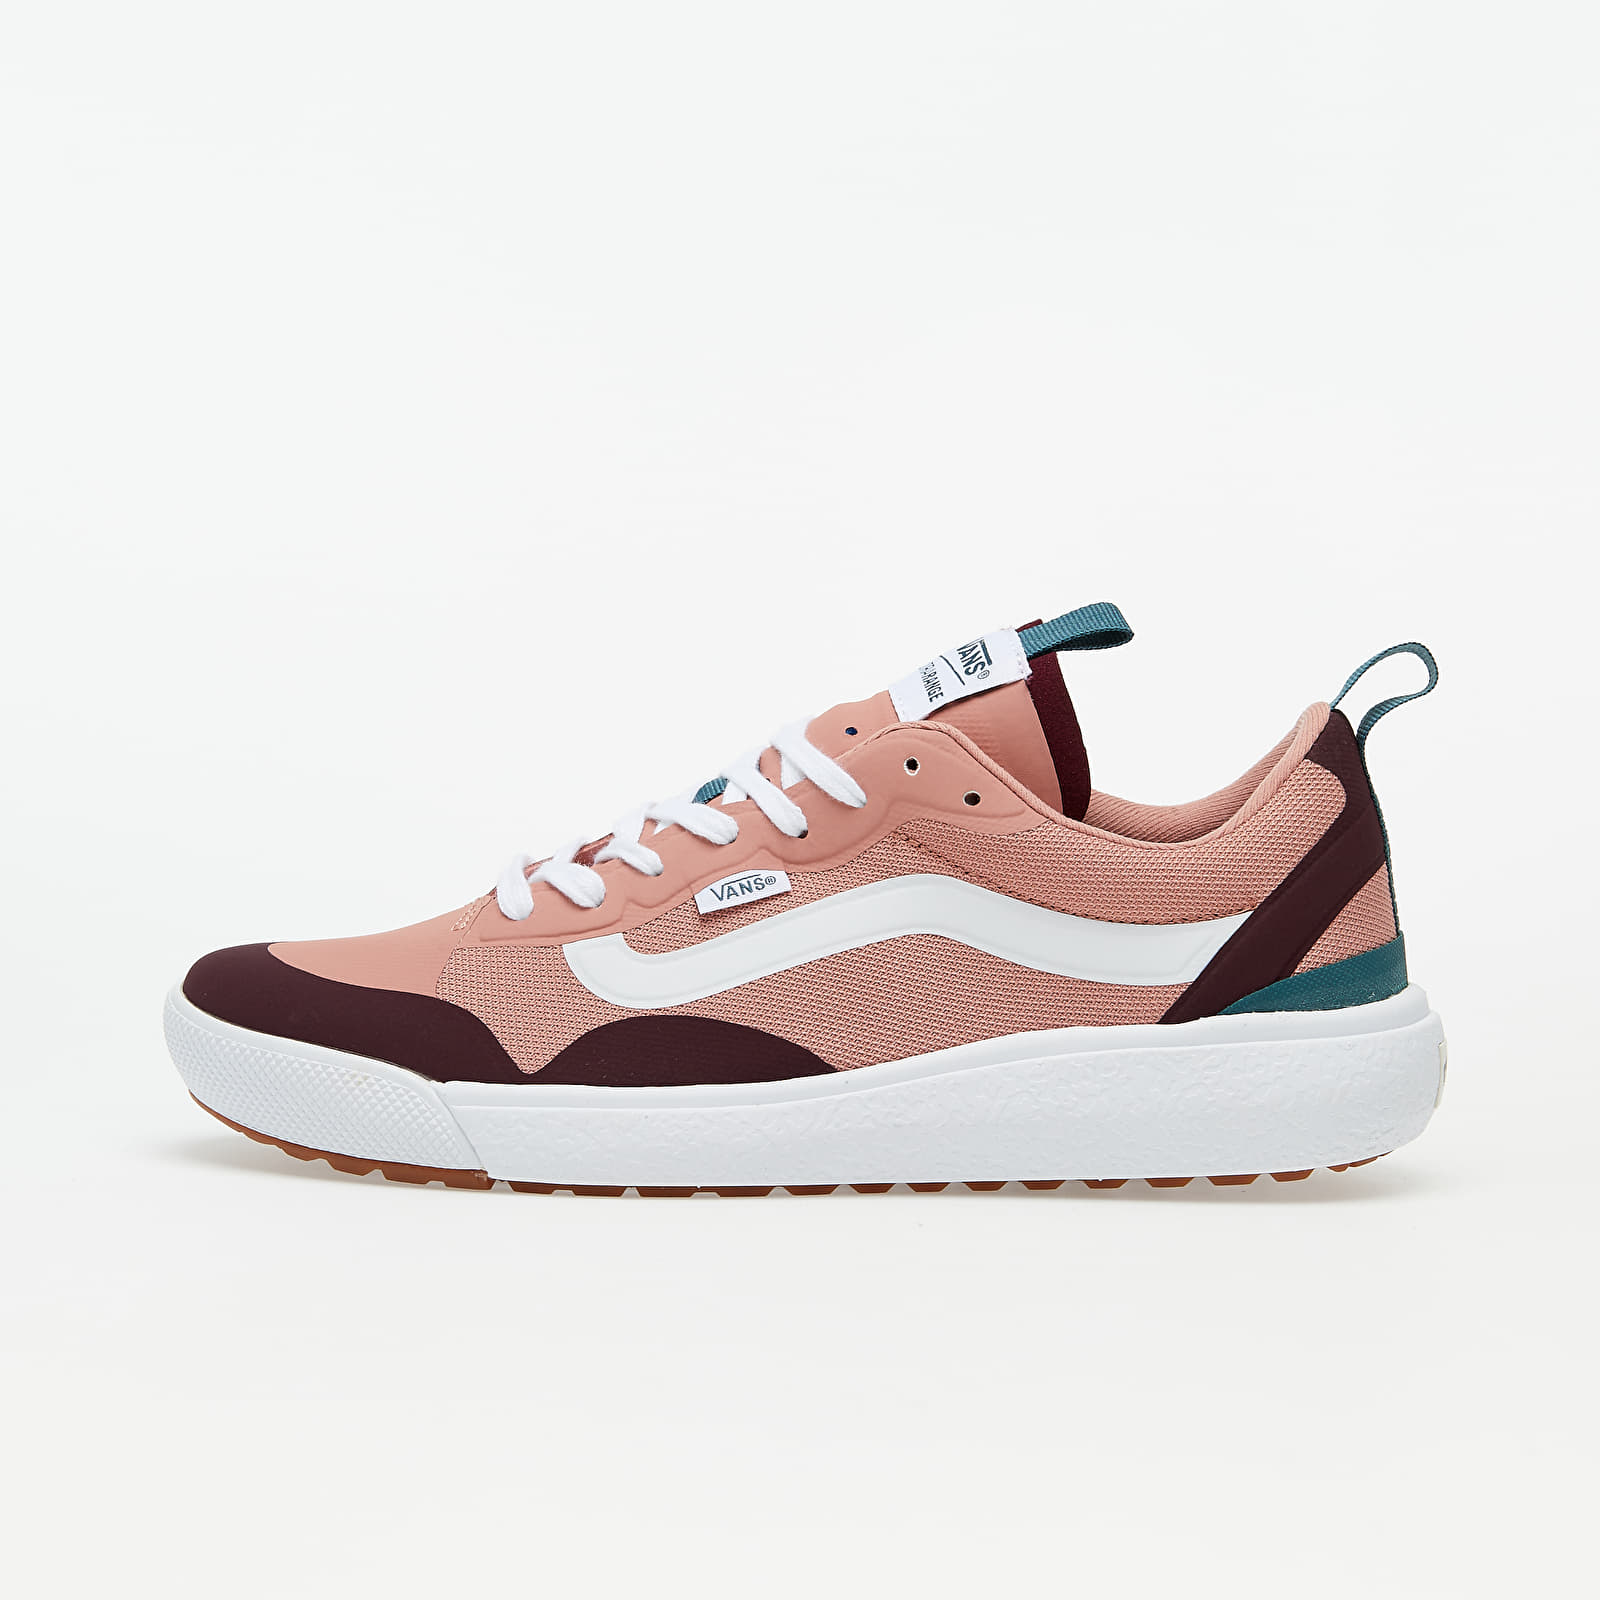 Vans Ultrarange Exo (Pop) Rose Dawn/ True White VN0A4U1K26S1